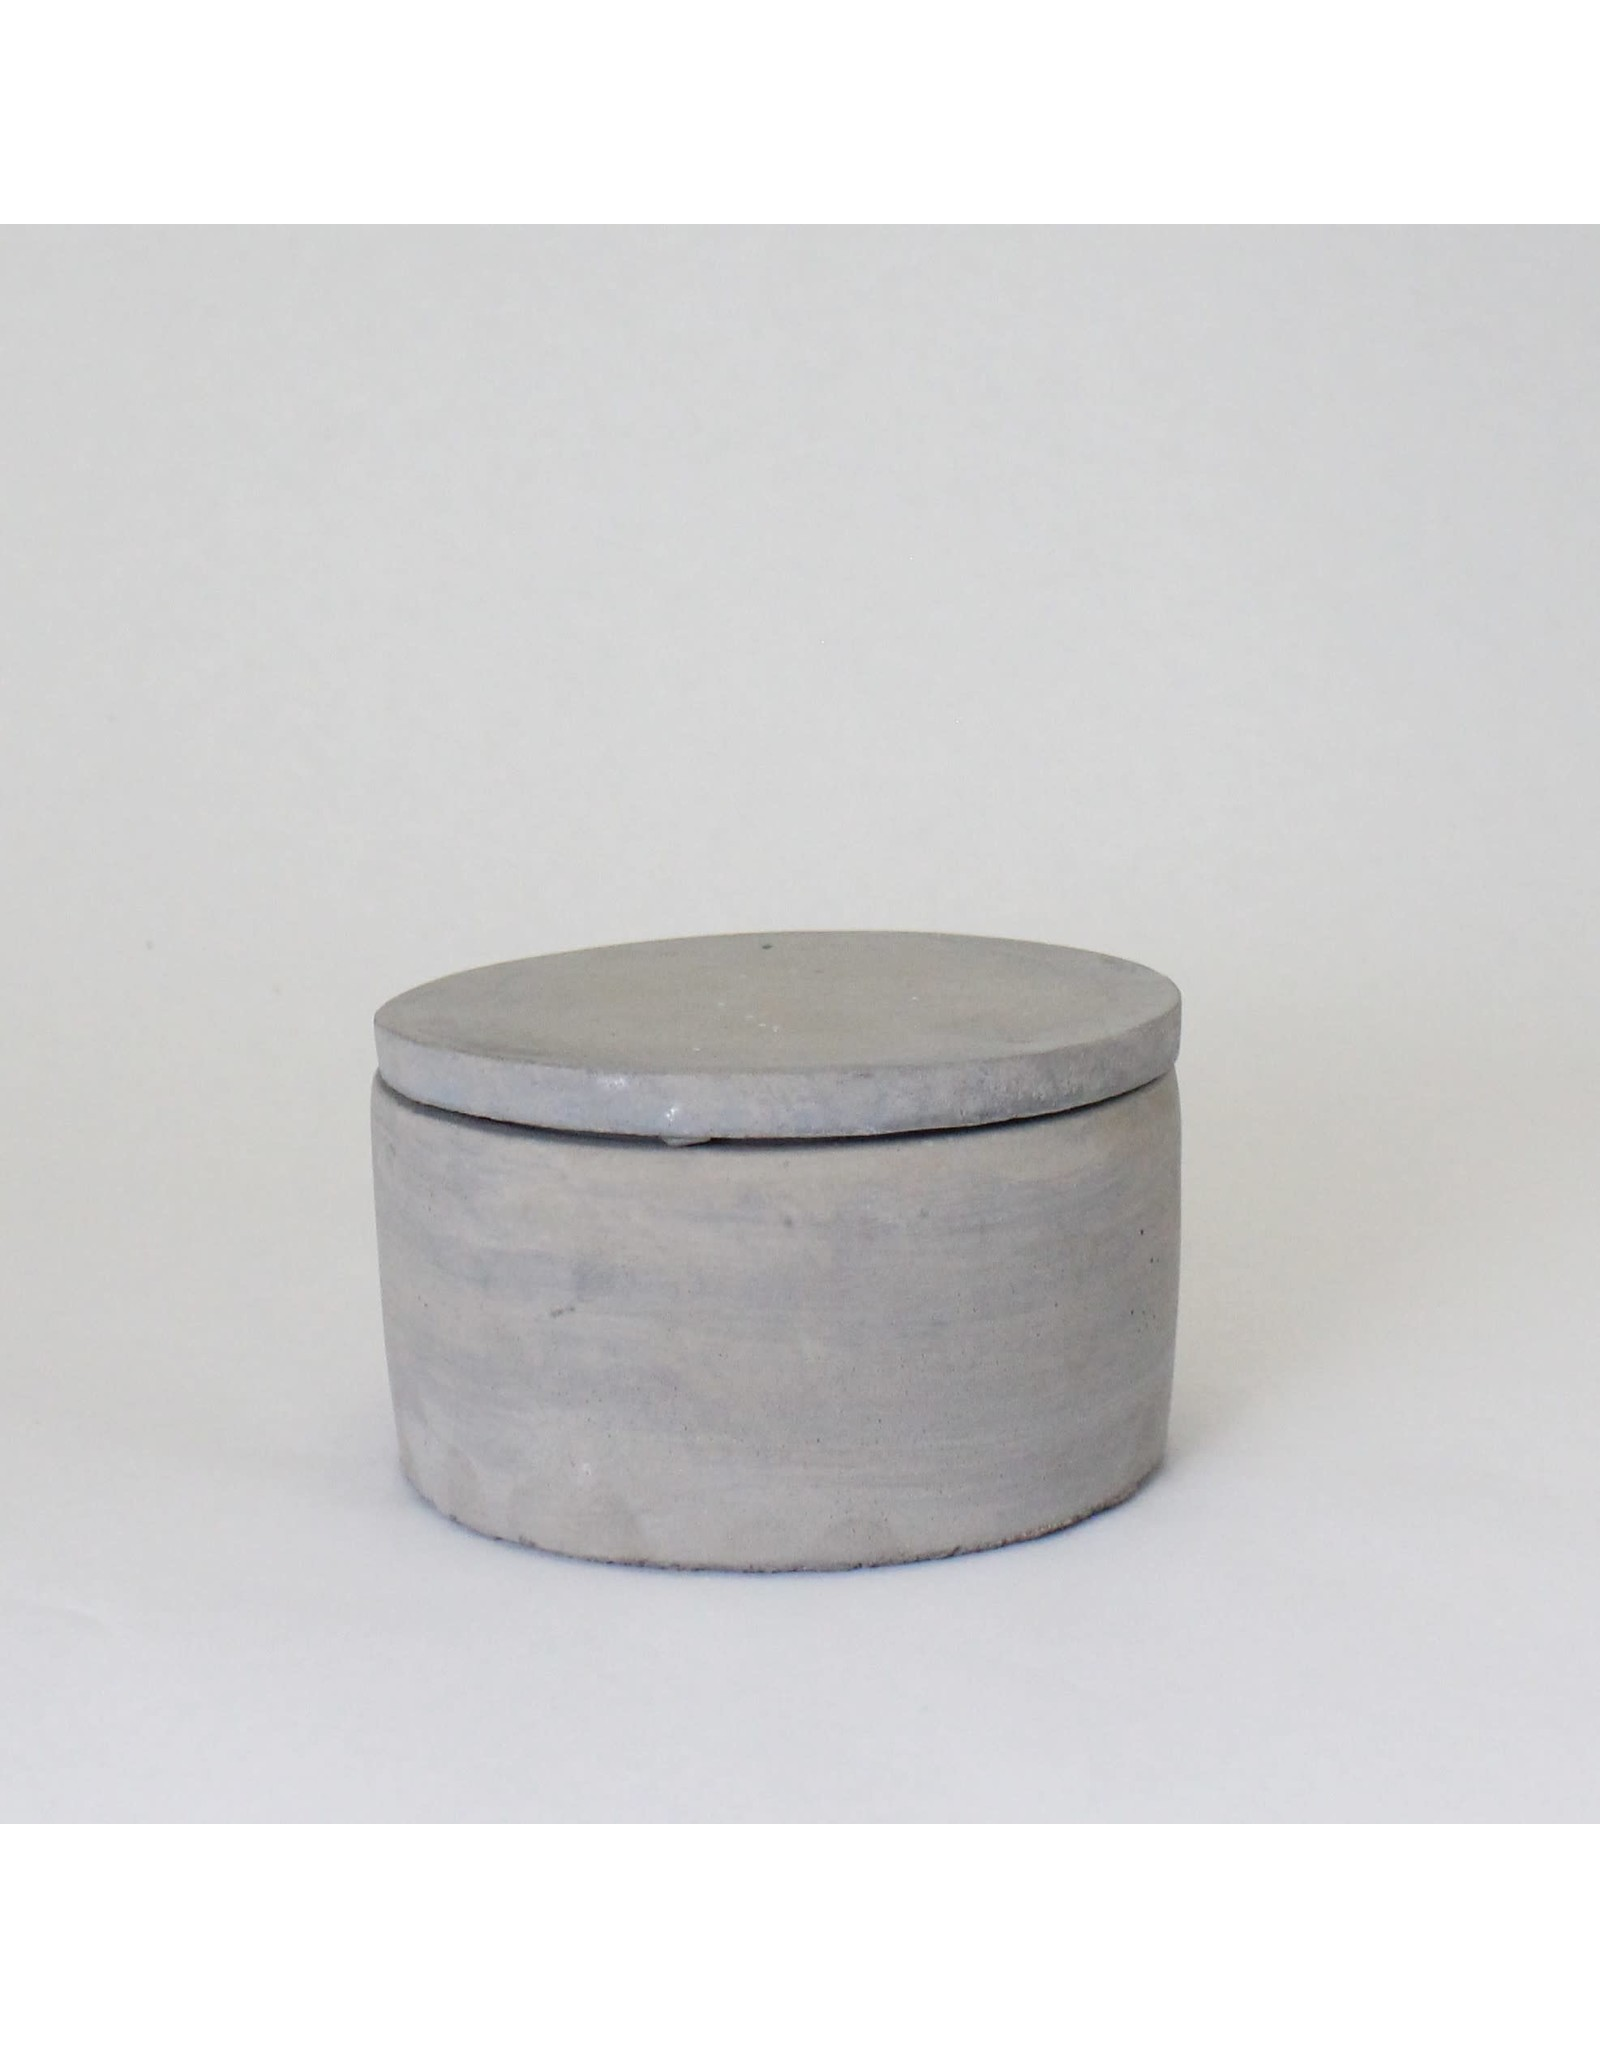 Concrete Box with Lid, Large